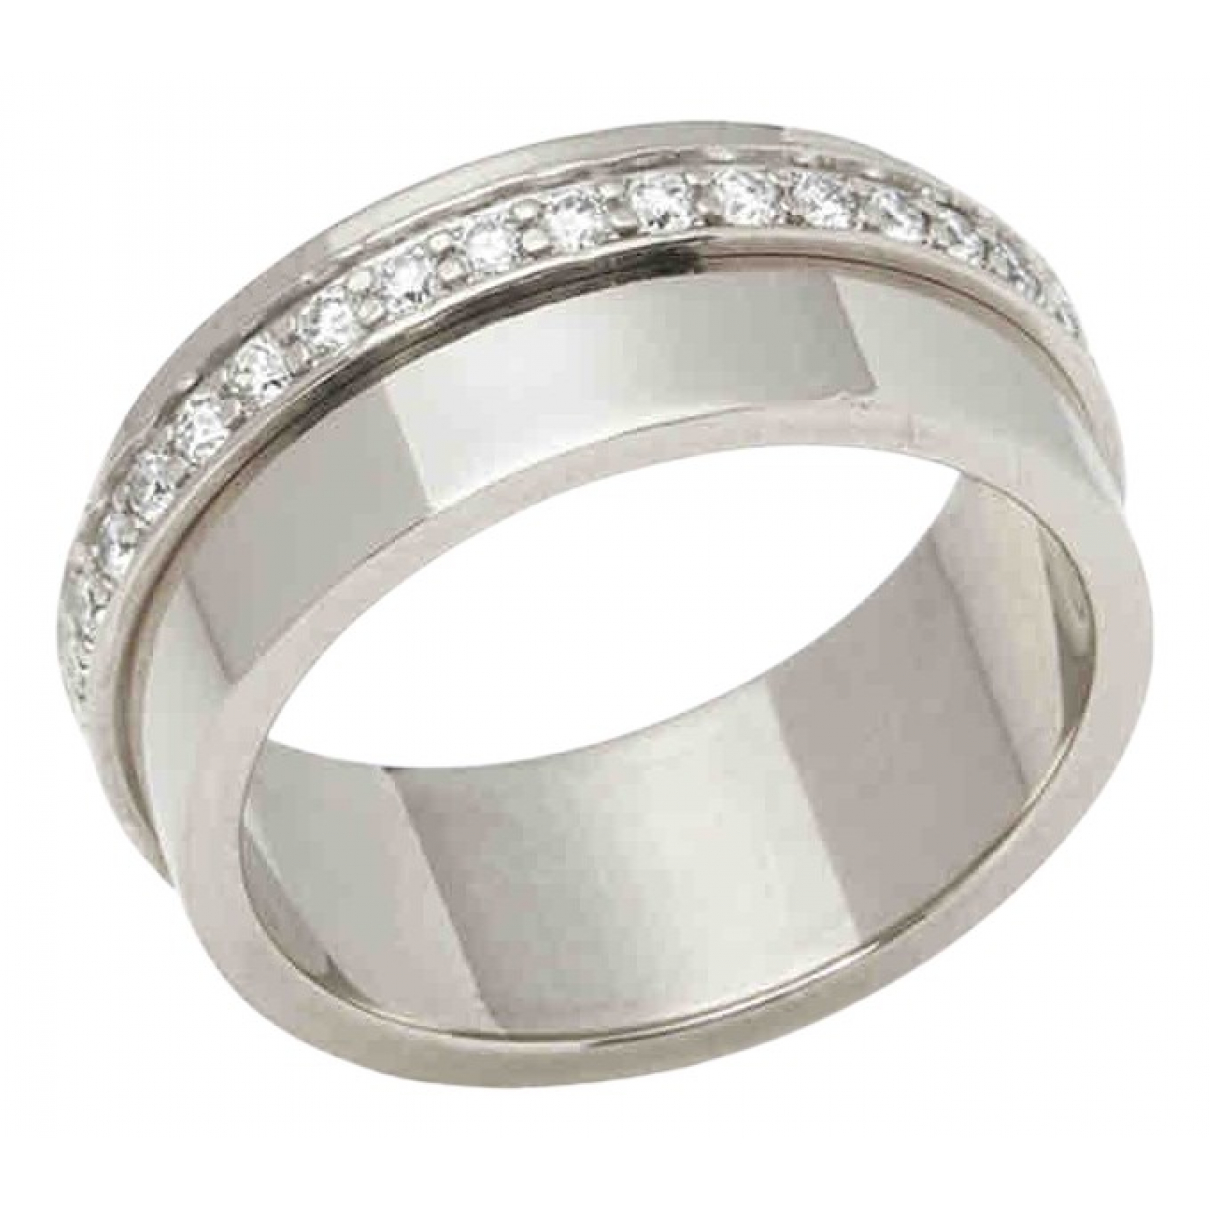 Piaget Possession Silver White gold ring for Women 55 EU